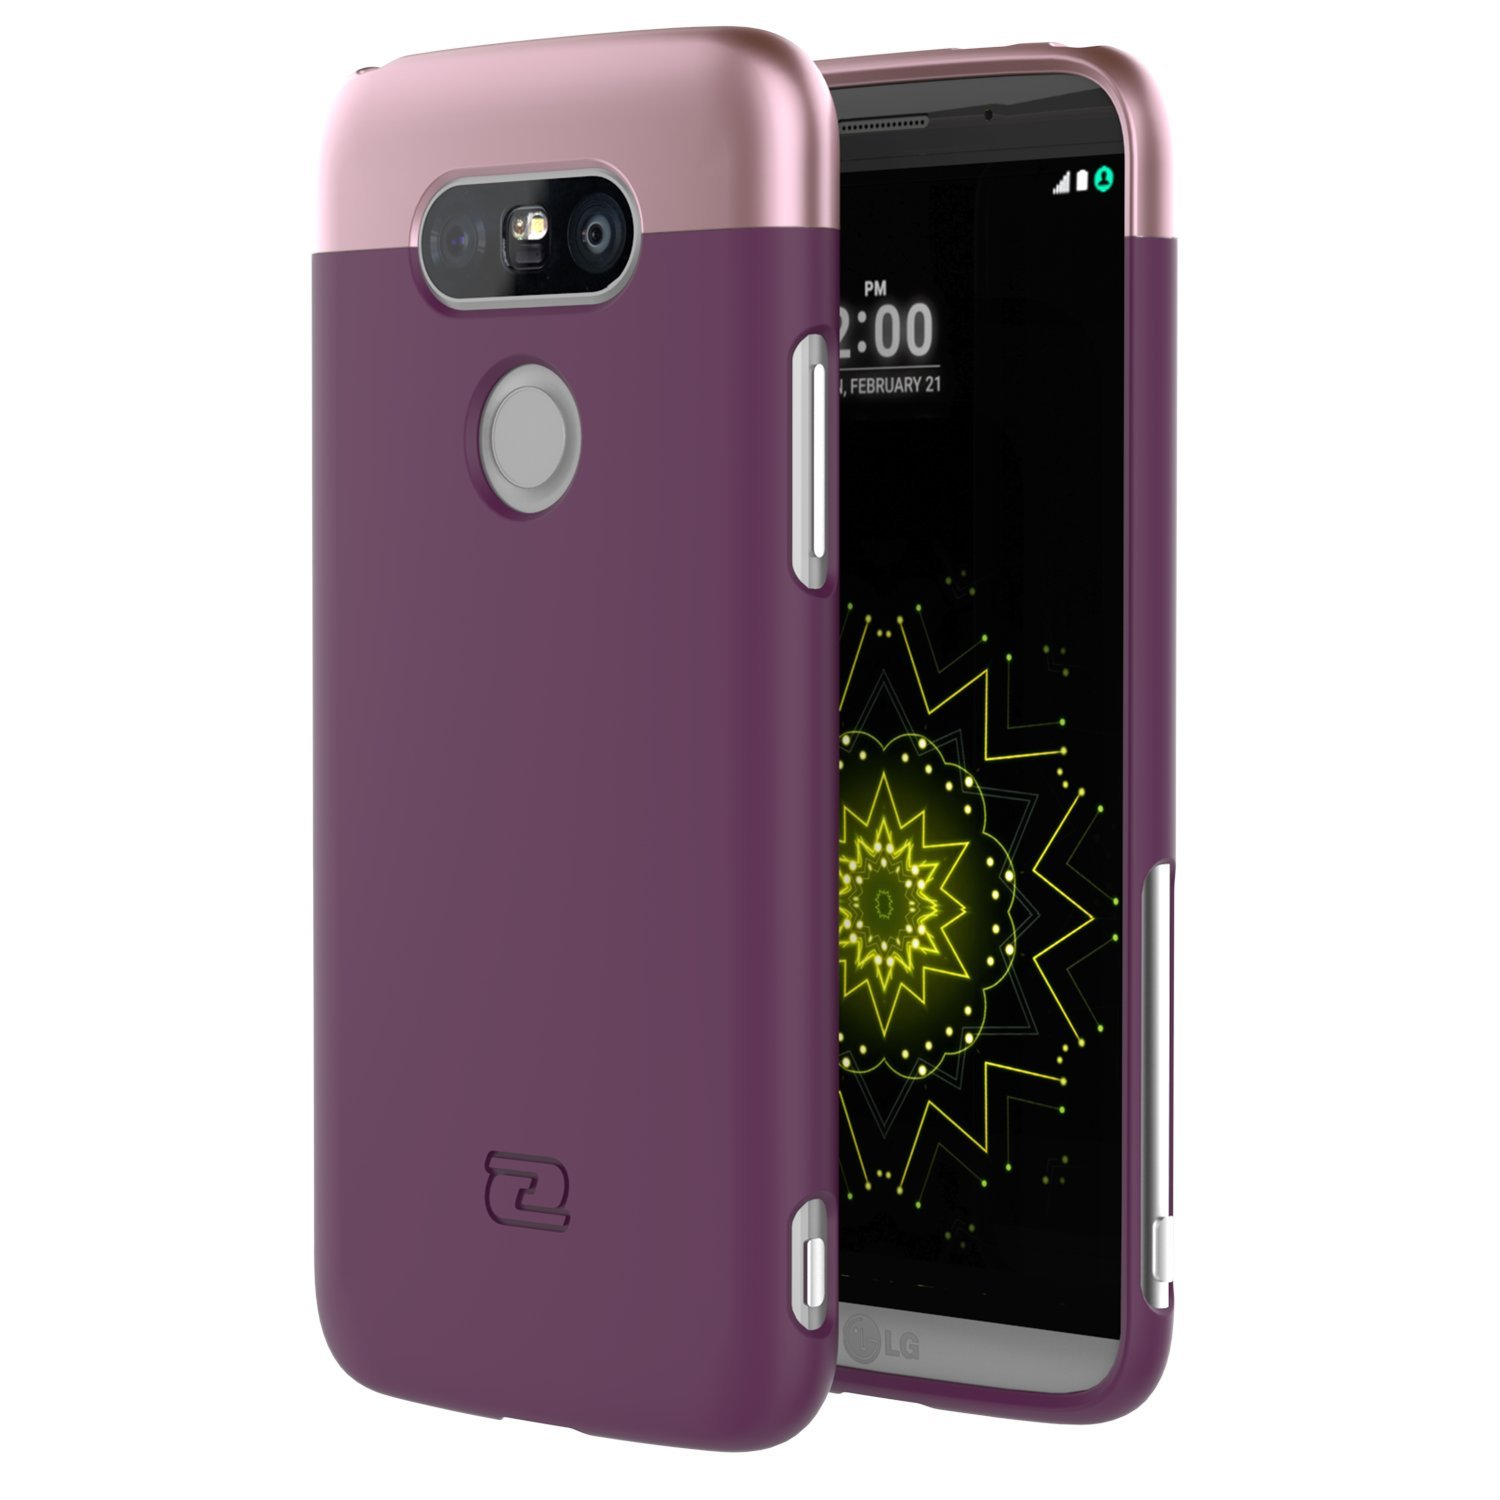 LG G5 Thin Case - Ultra Slim SlimShield Hybrid Shell by Encased (Royal Purple)